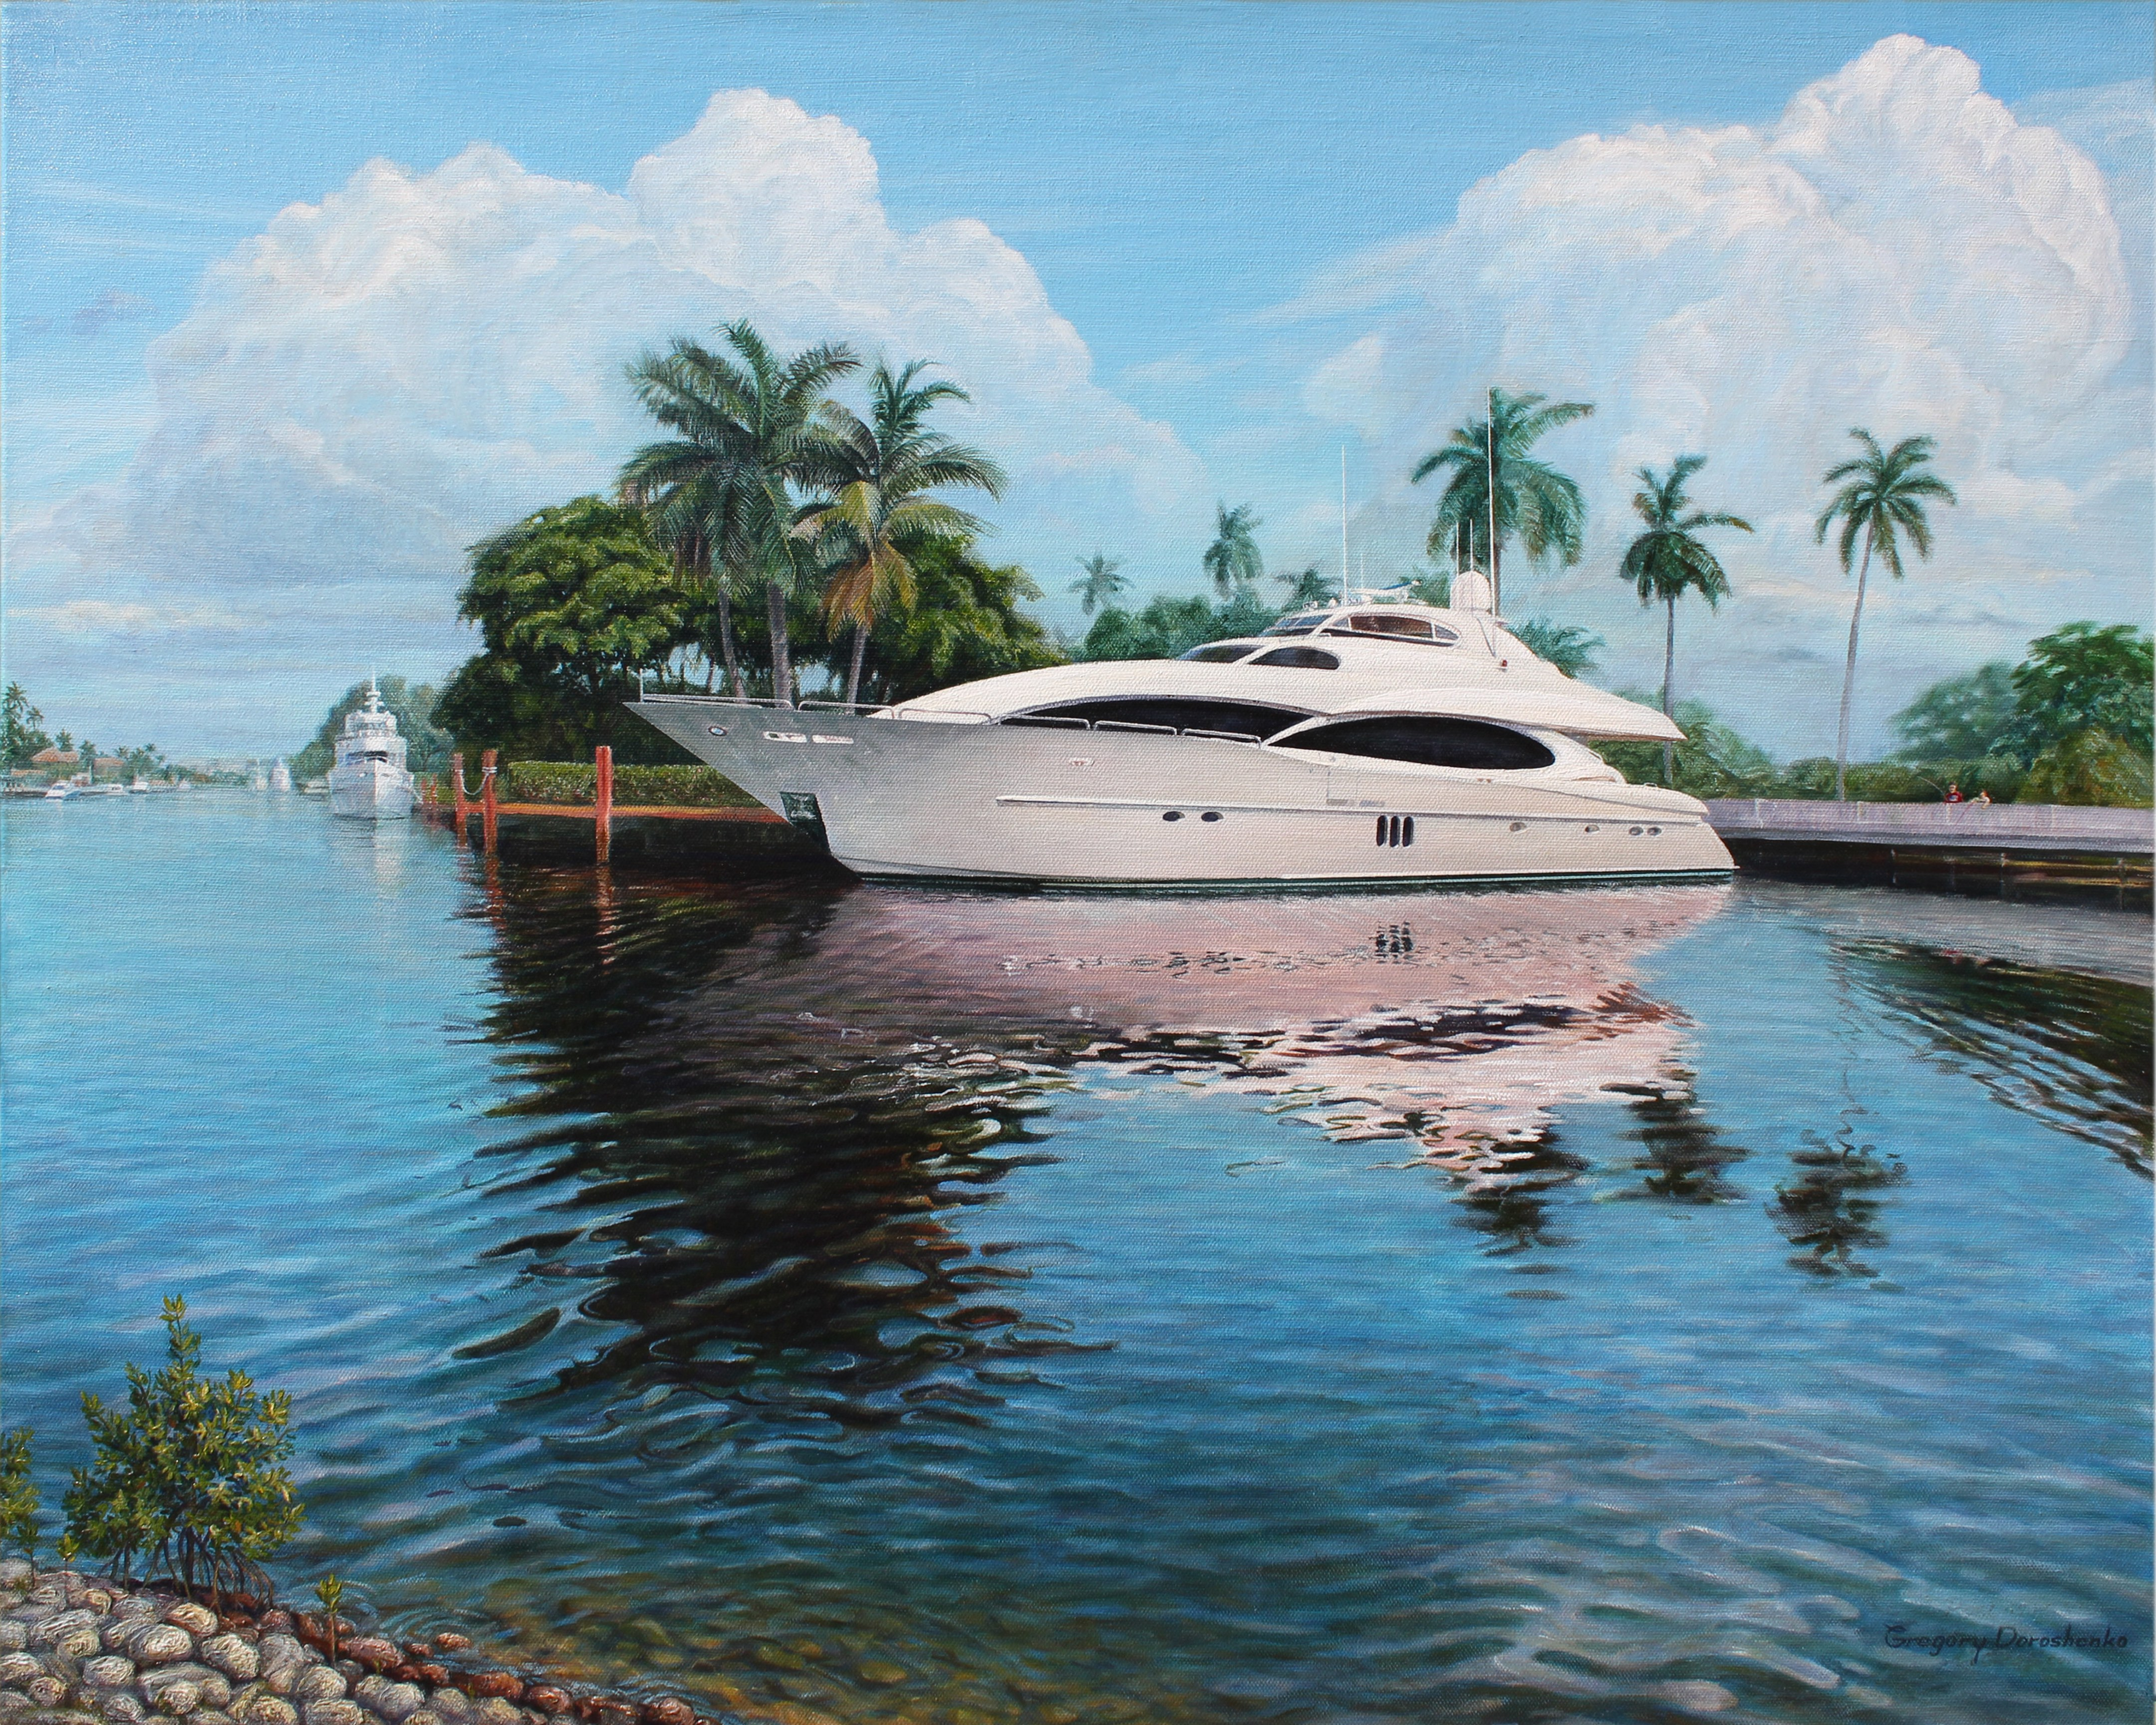 The Yacht. Oil on Canvas. To buy a print, click below